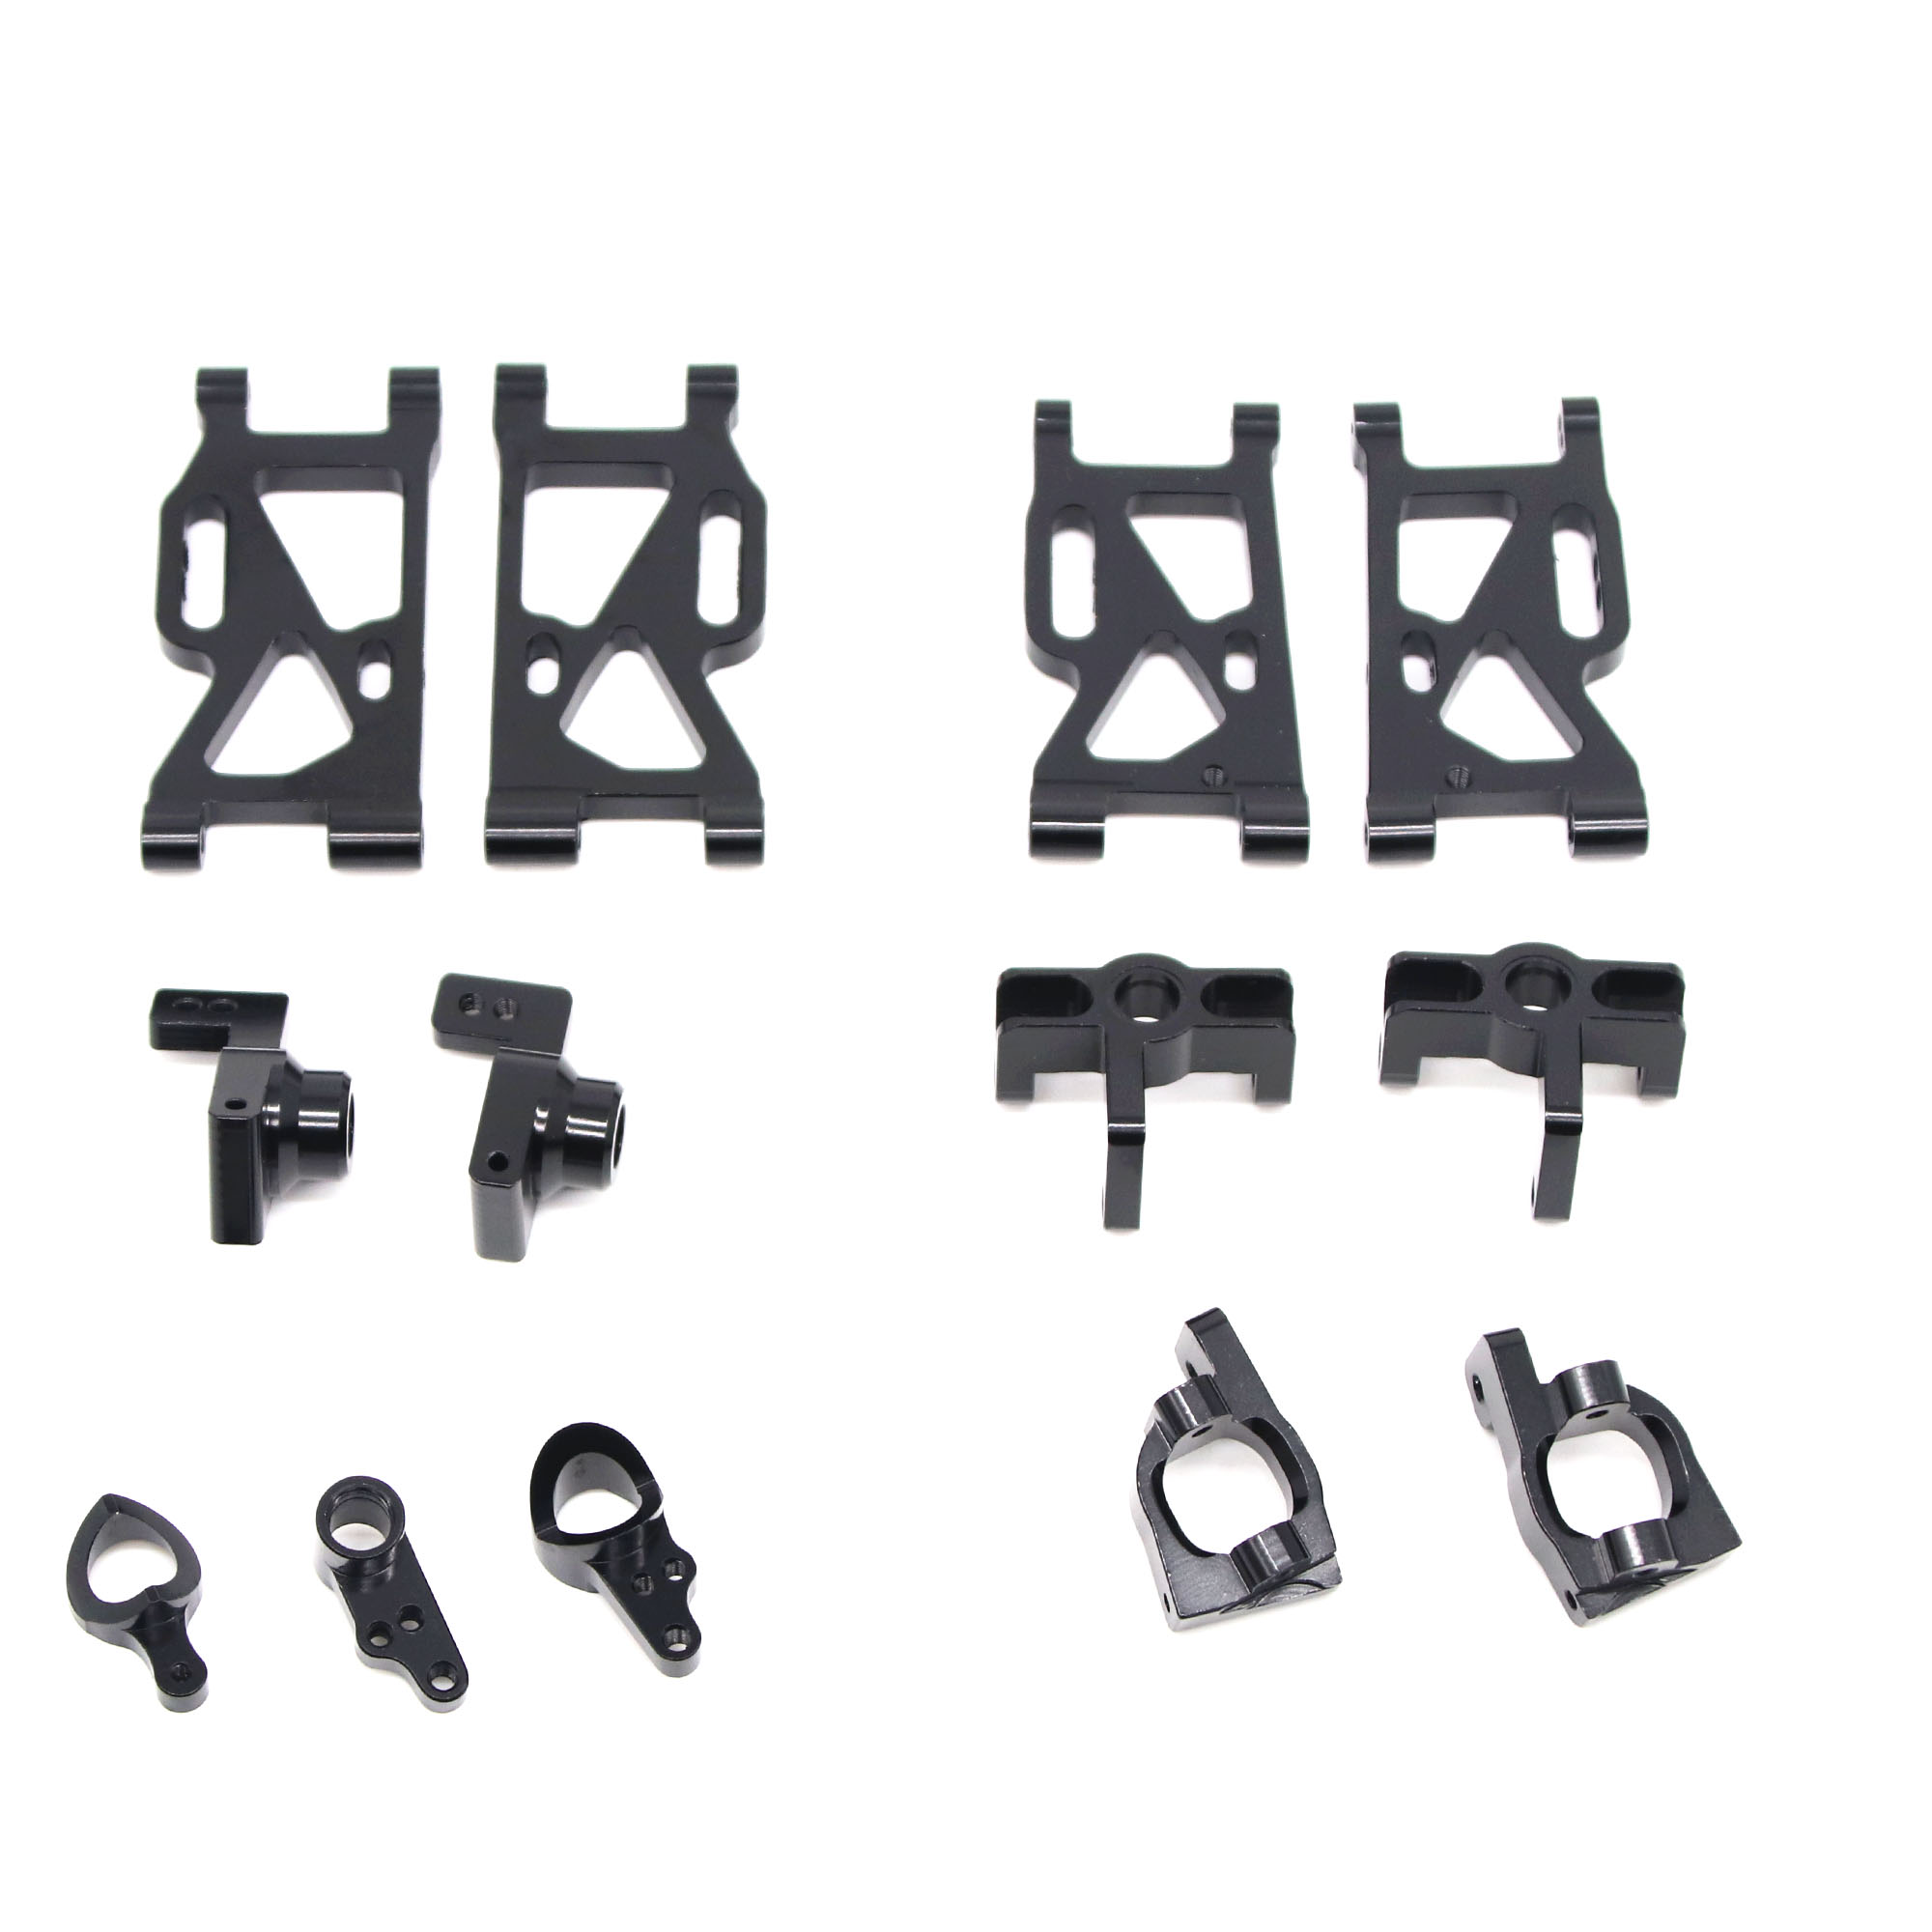 13Pcs/set Metal Front Rear Wheel Seat Base C Swing Arm Steering Clutch Component for WLtoys 144001 1/14 RC Car Upgrade Spare Parts black_13PCS